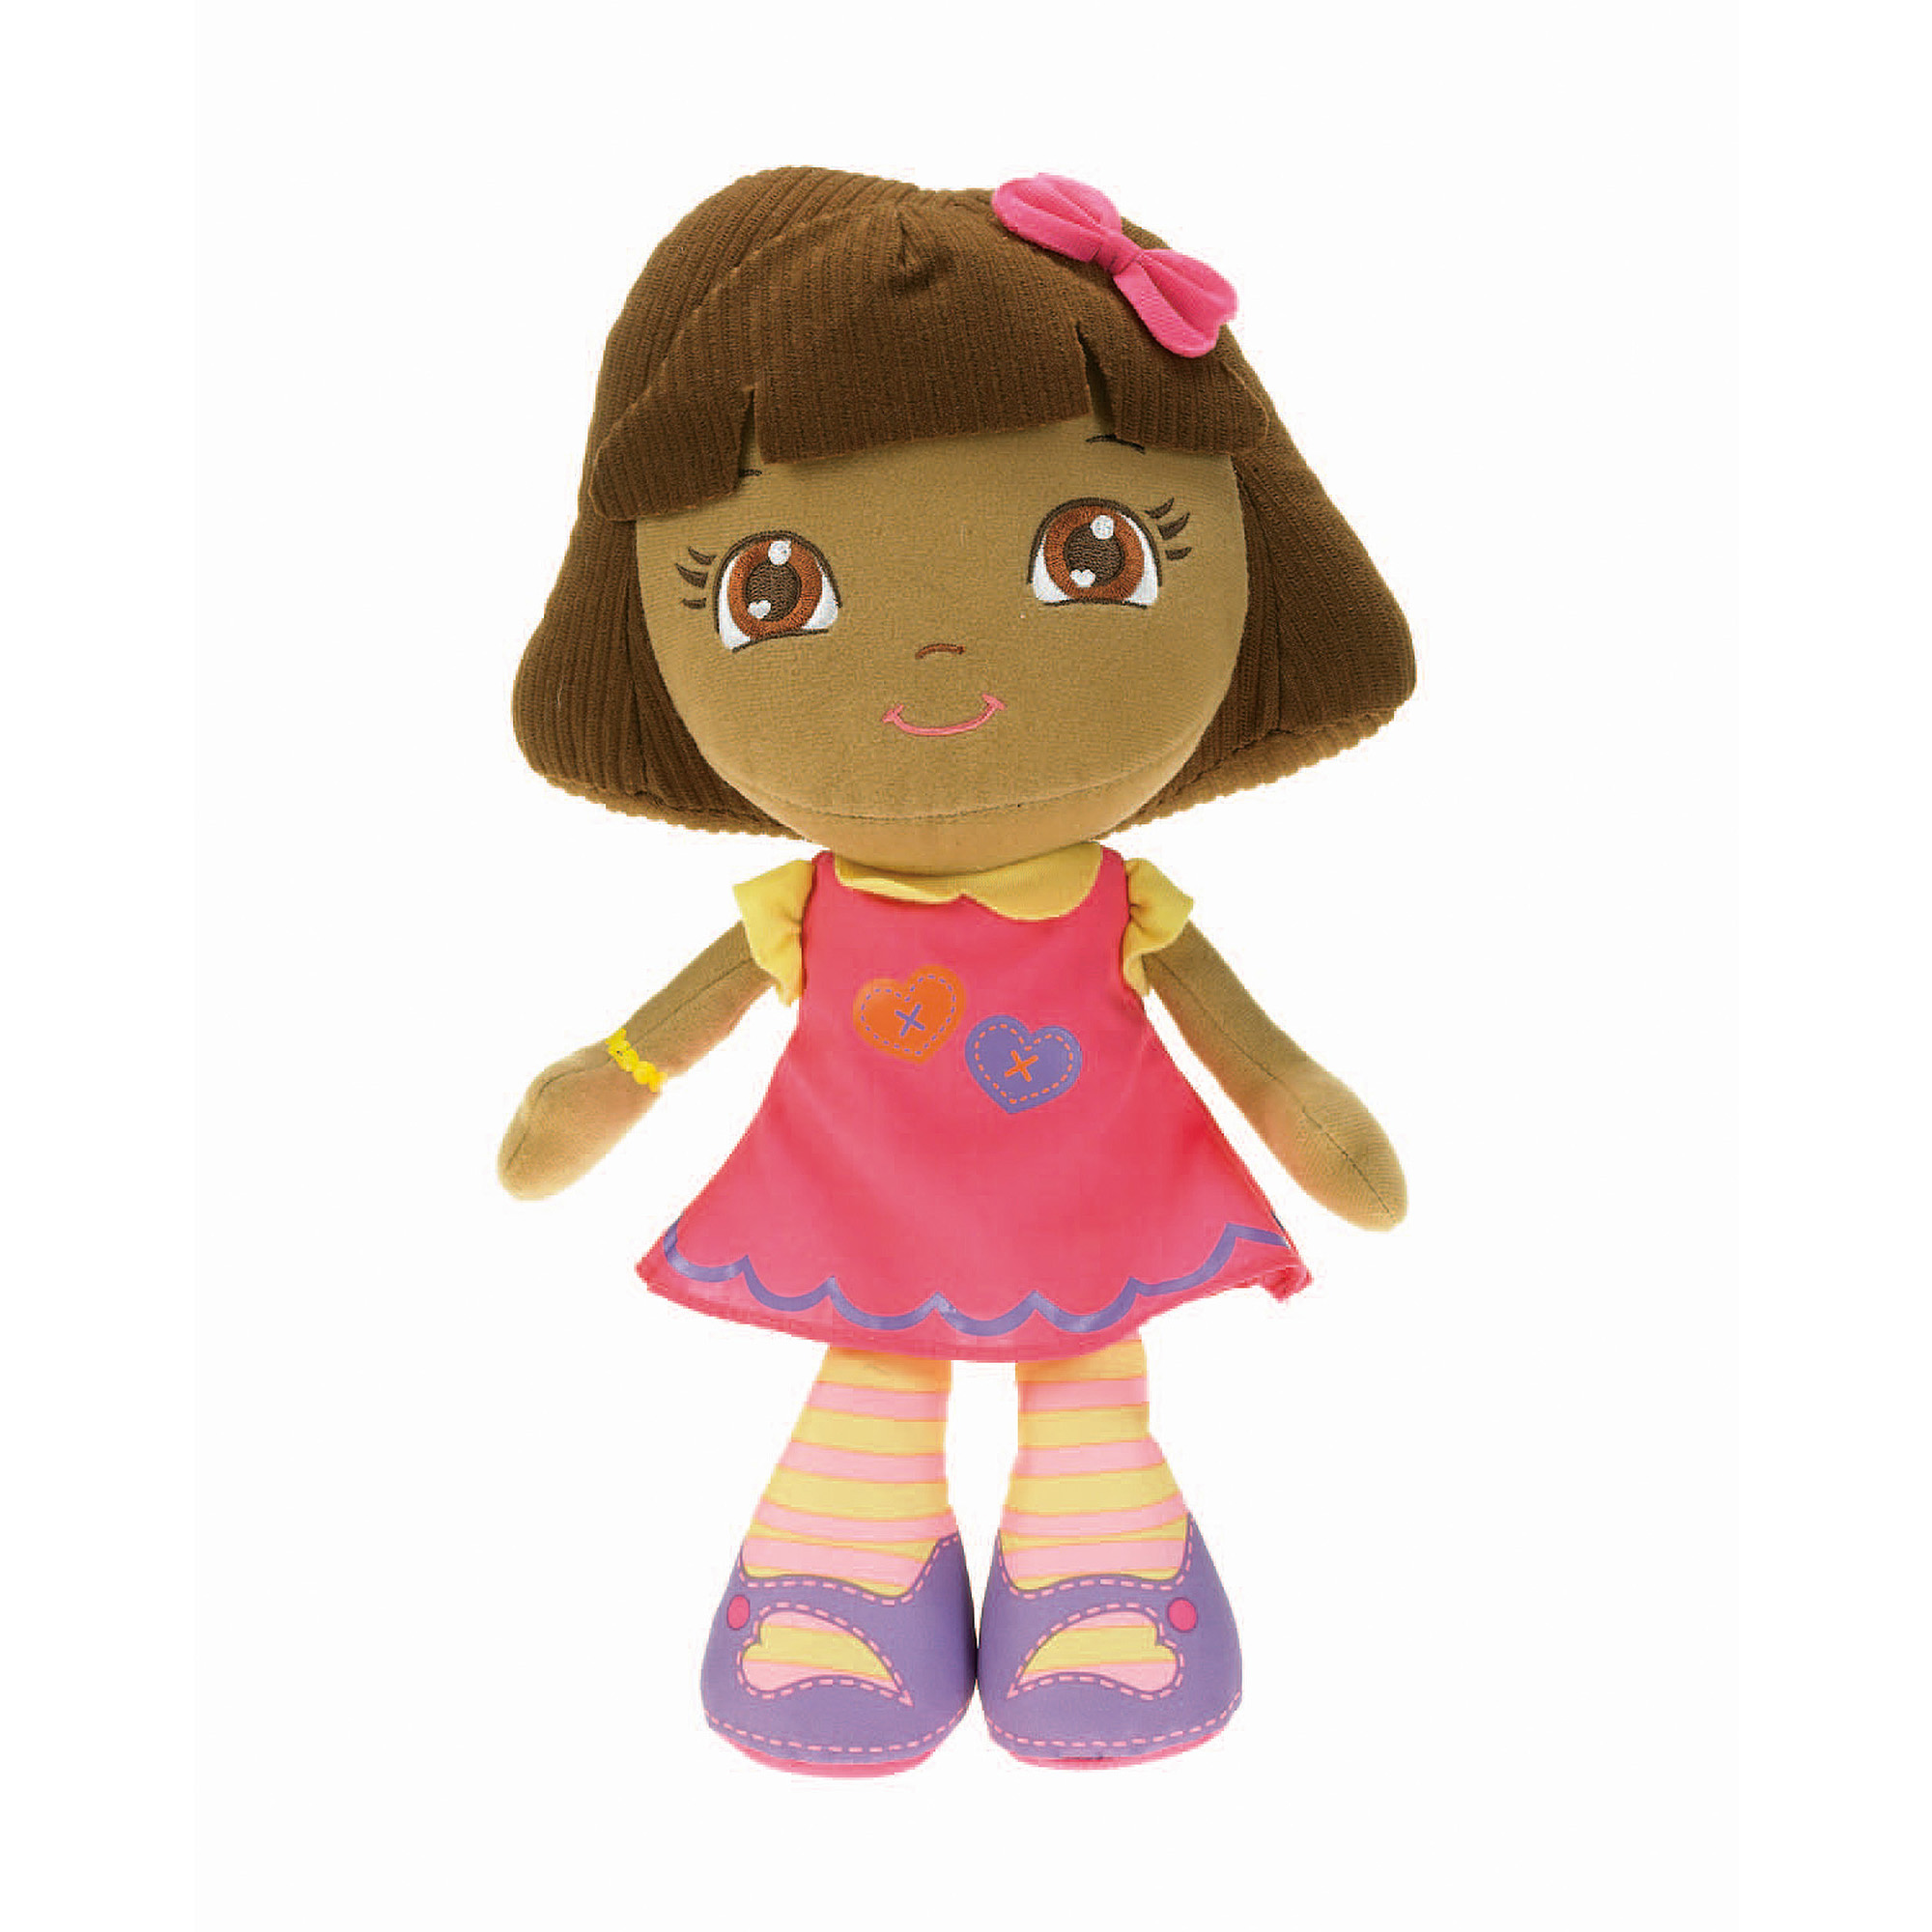 Nickelodeon Dora the Explorer Dora Loves You